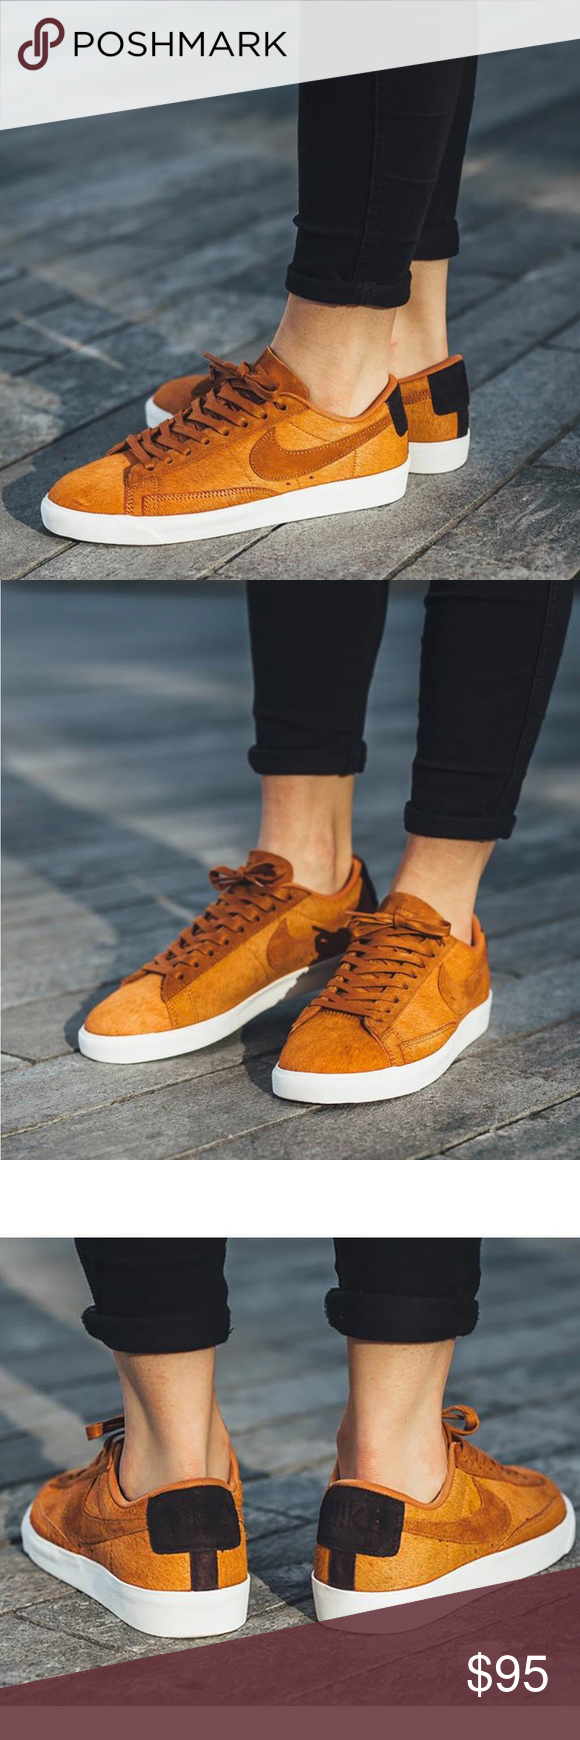 stable quality 50% price look for Nike blazer low lx sneakers Nike blazer low lx sneakers New ...